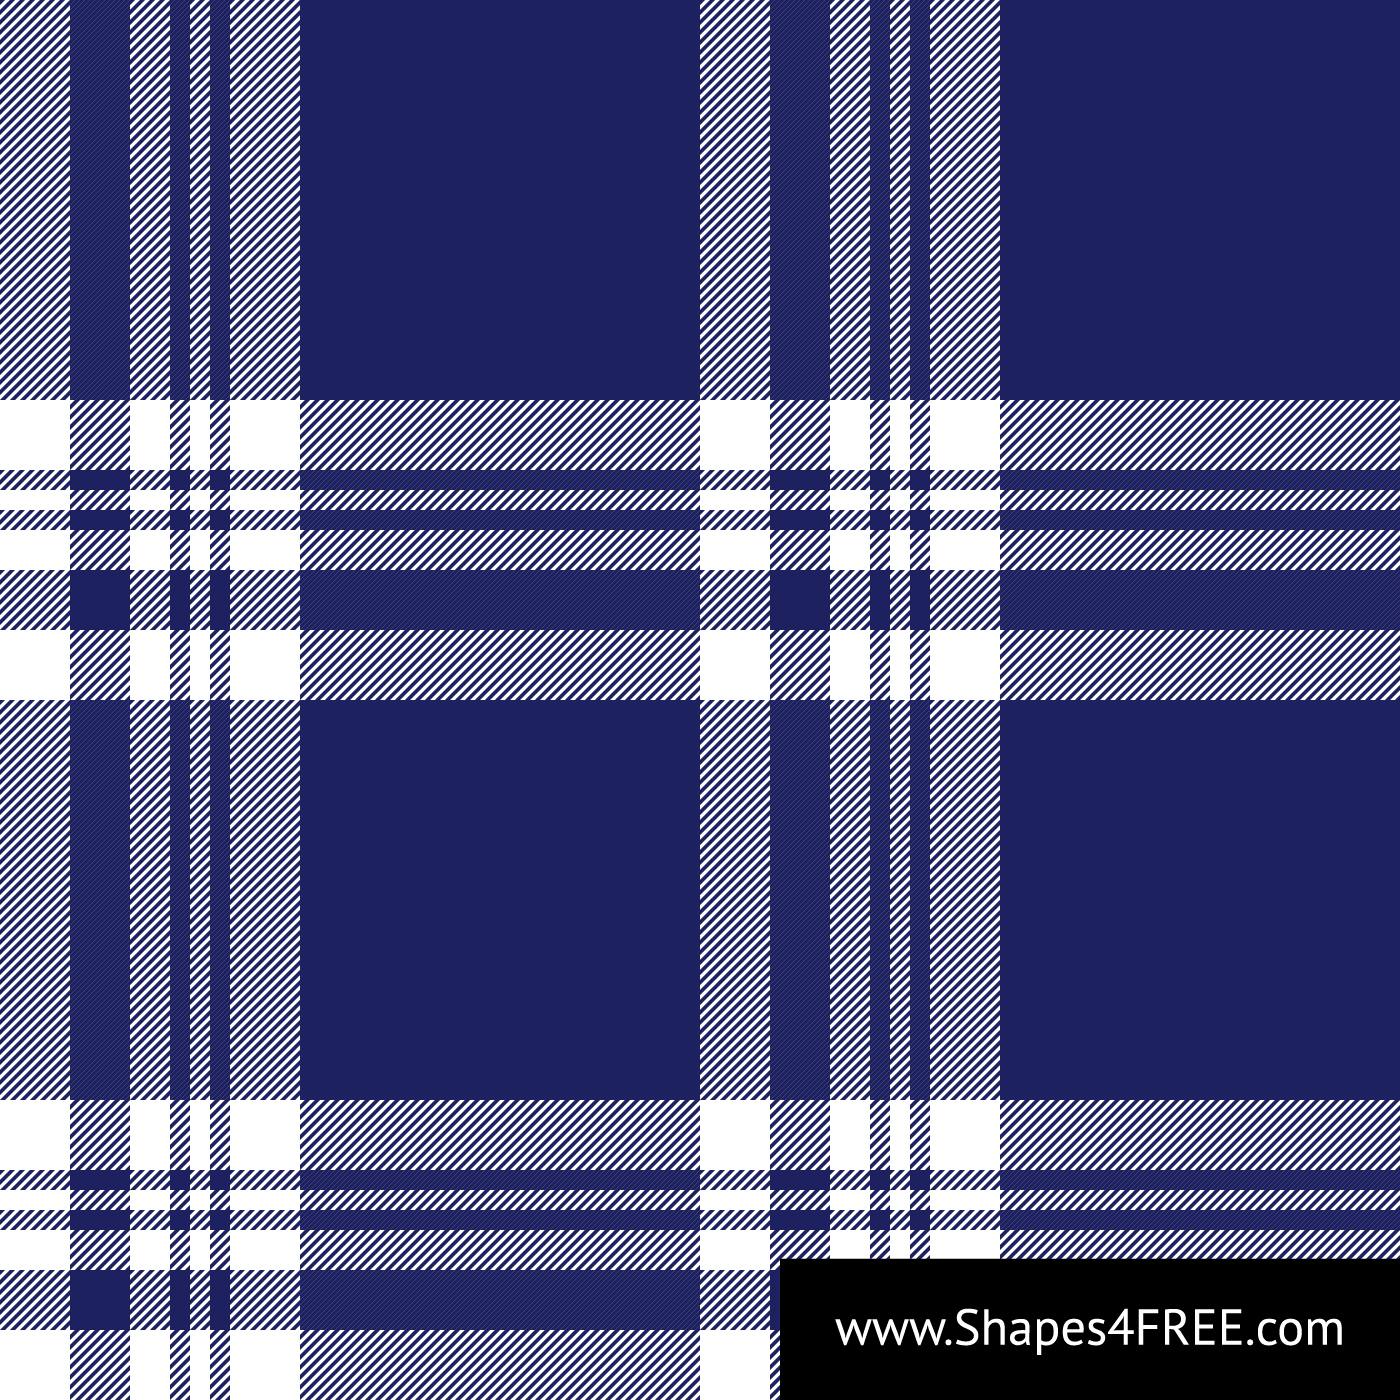 Navy Blue & White Check Plaid Vector Pattern (SVG)